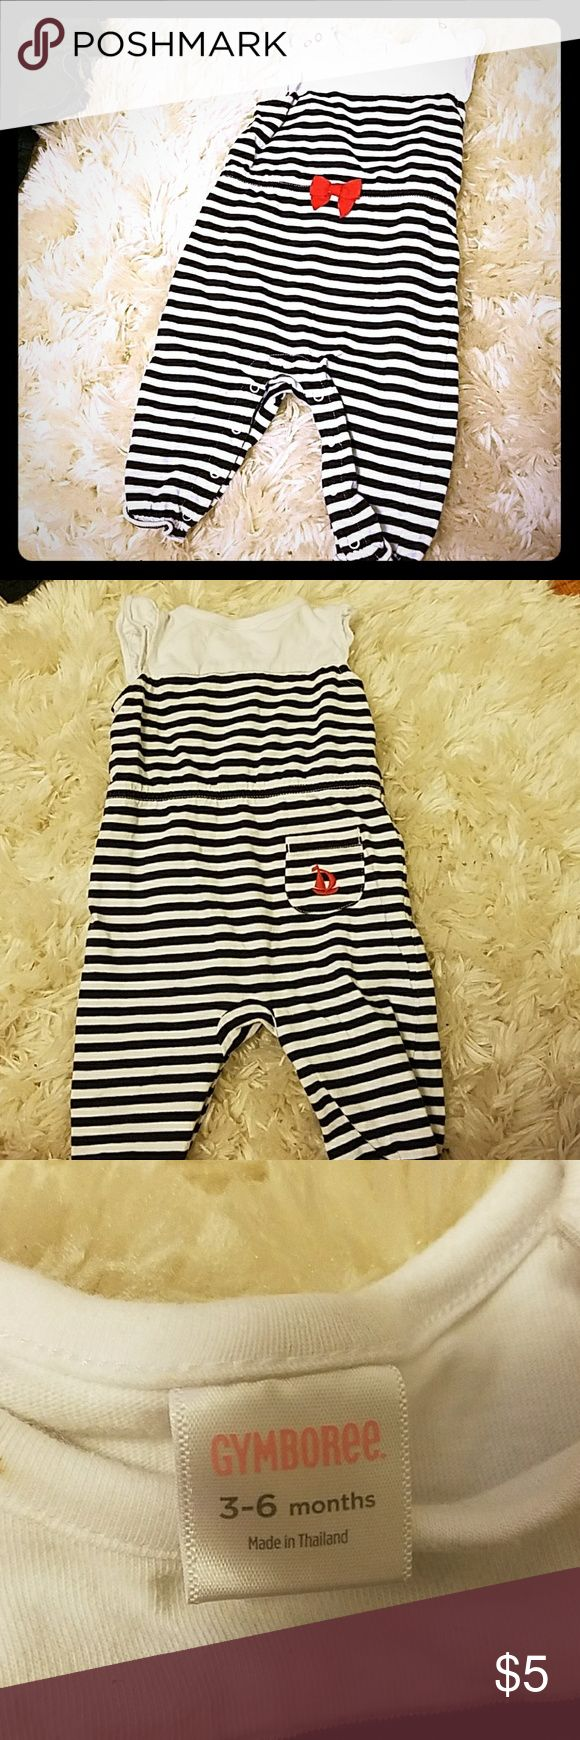 Nautical Striped Jumper Navy blue striped nautical jumper with red accents. Smoke free, pet free home. Gymboree One Pieces